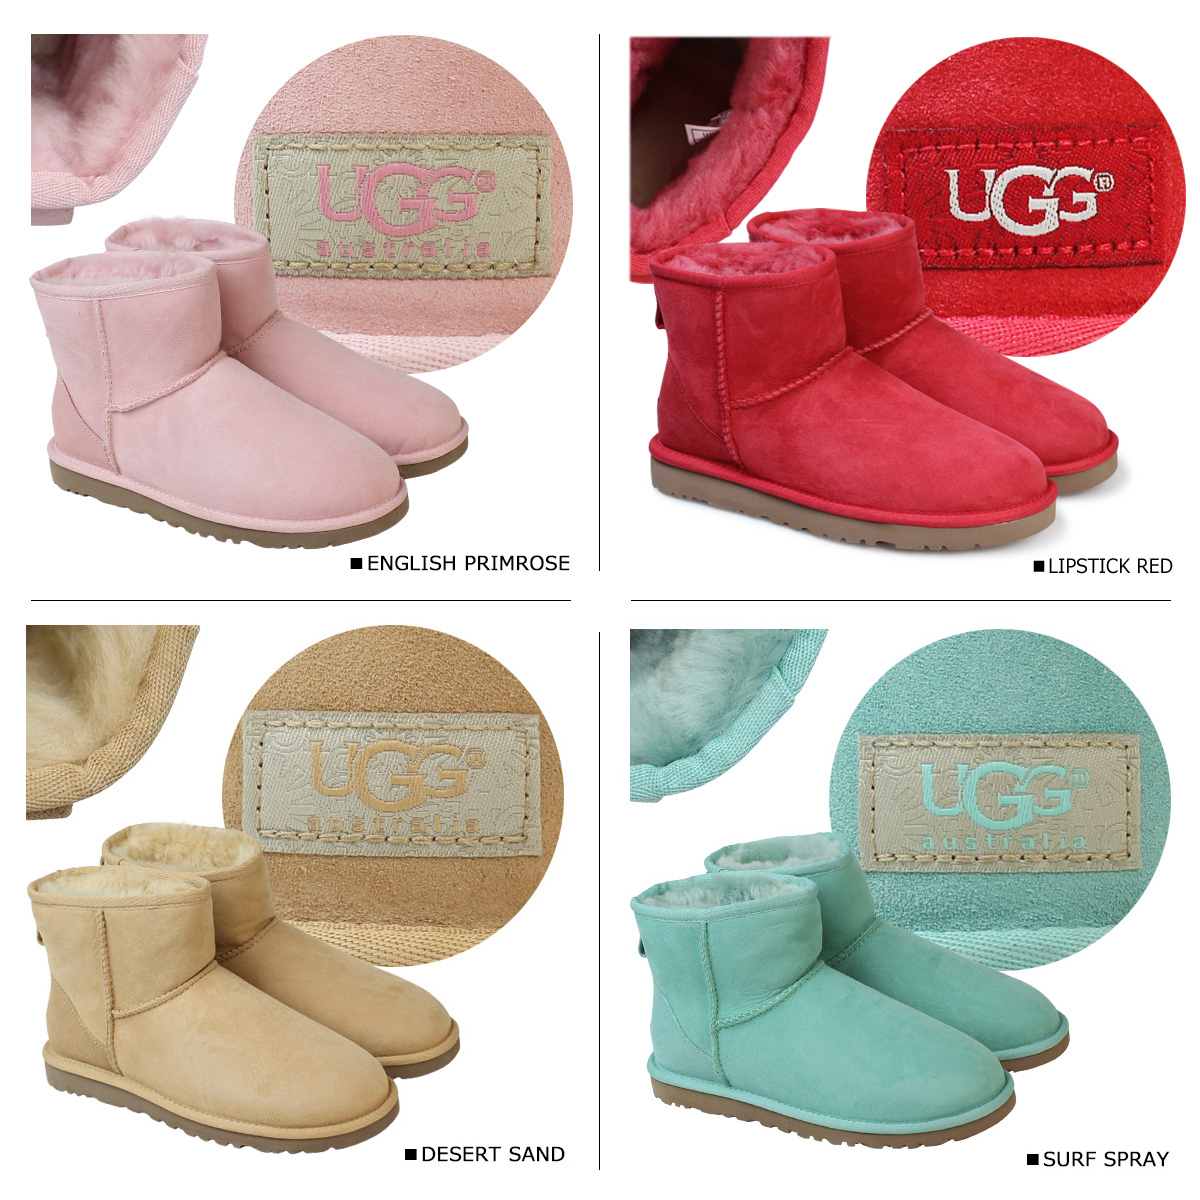 whats up sports ugg ugg classic mini sheepskin boots womens classic rh global rakuten com